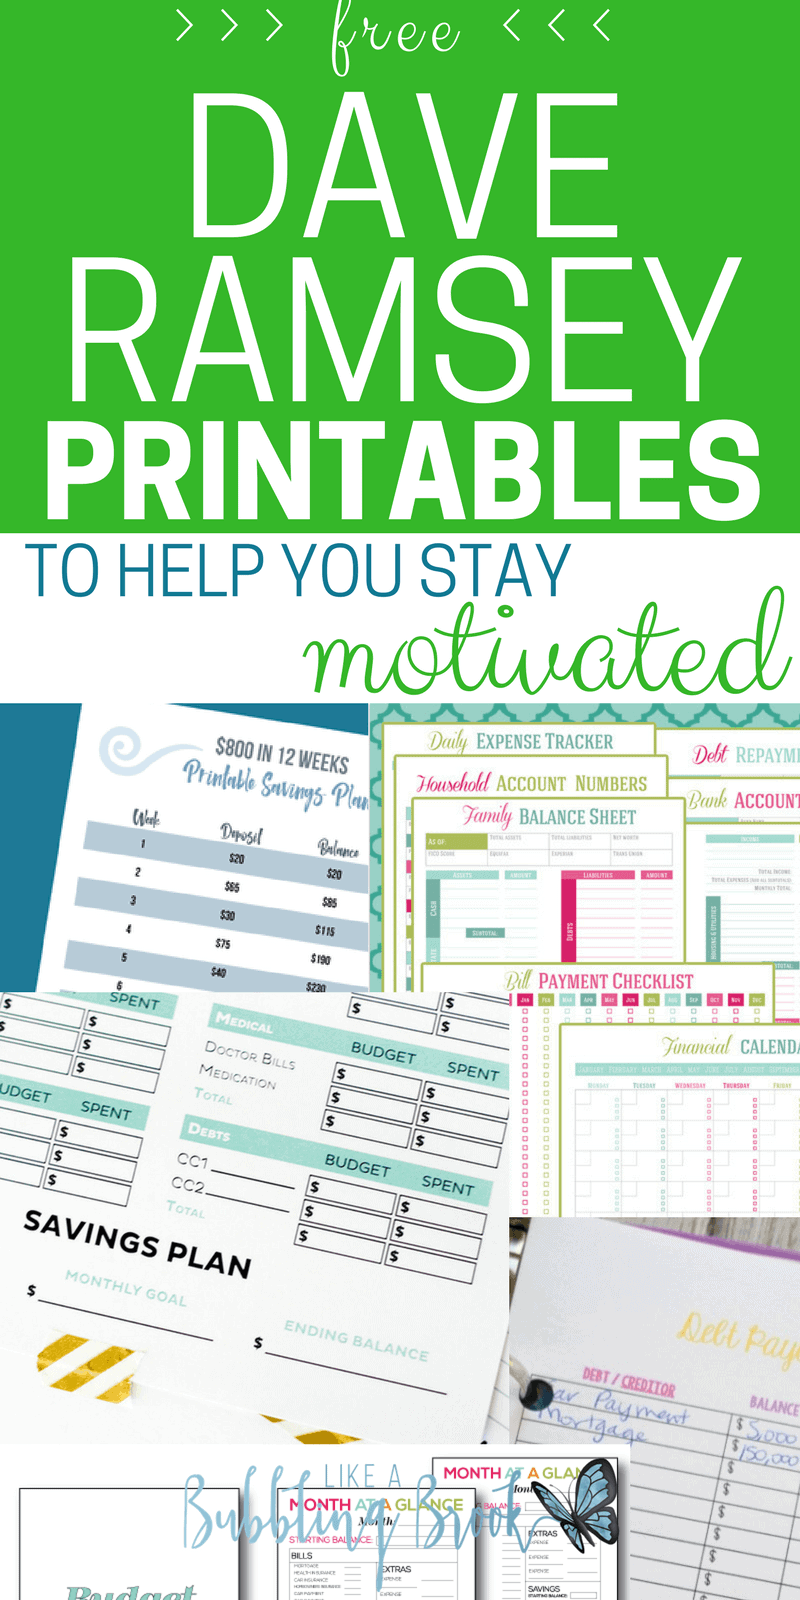 Dave Ramsey Printables That Will Help You Stay Motivated and Gazelle Intense